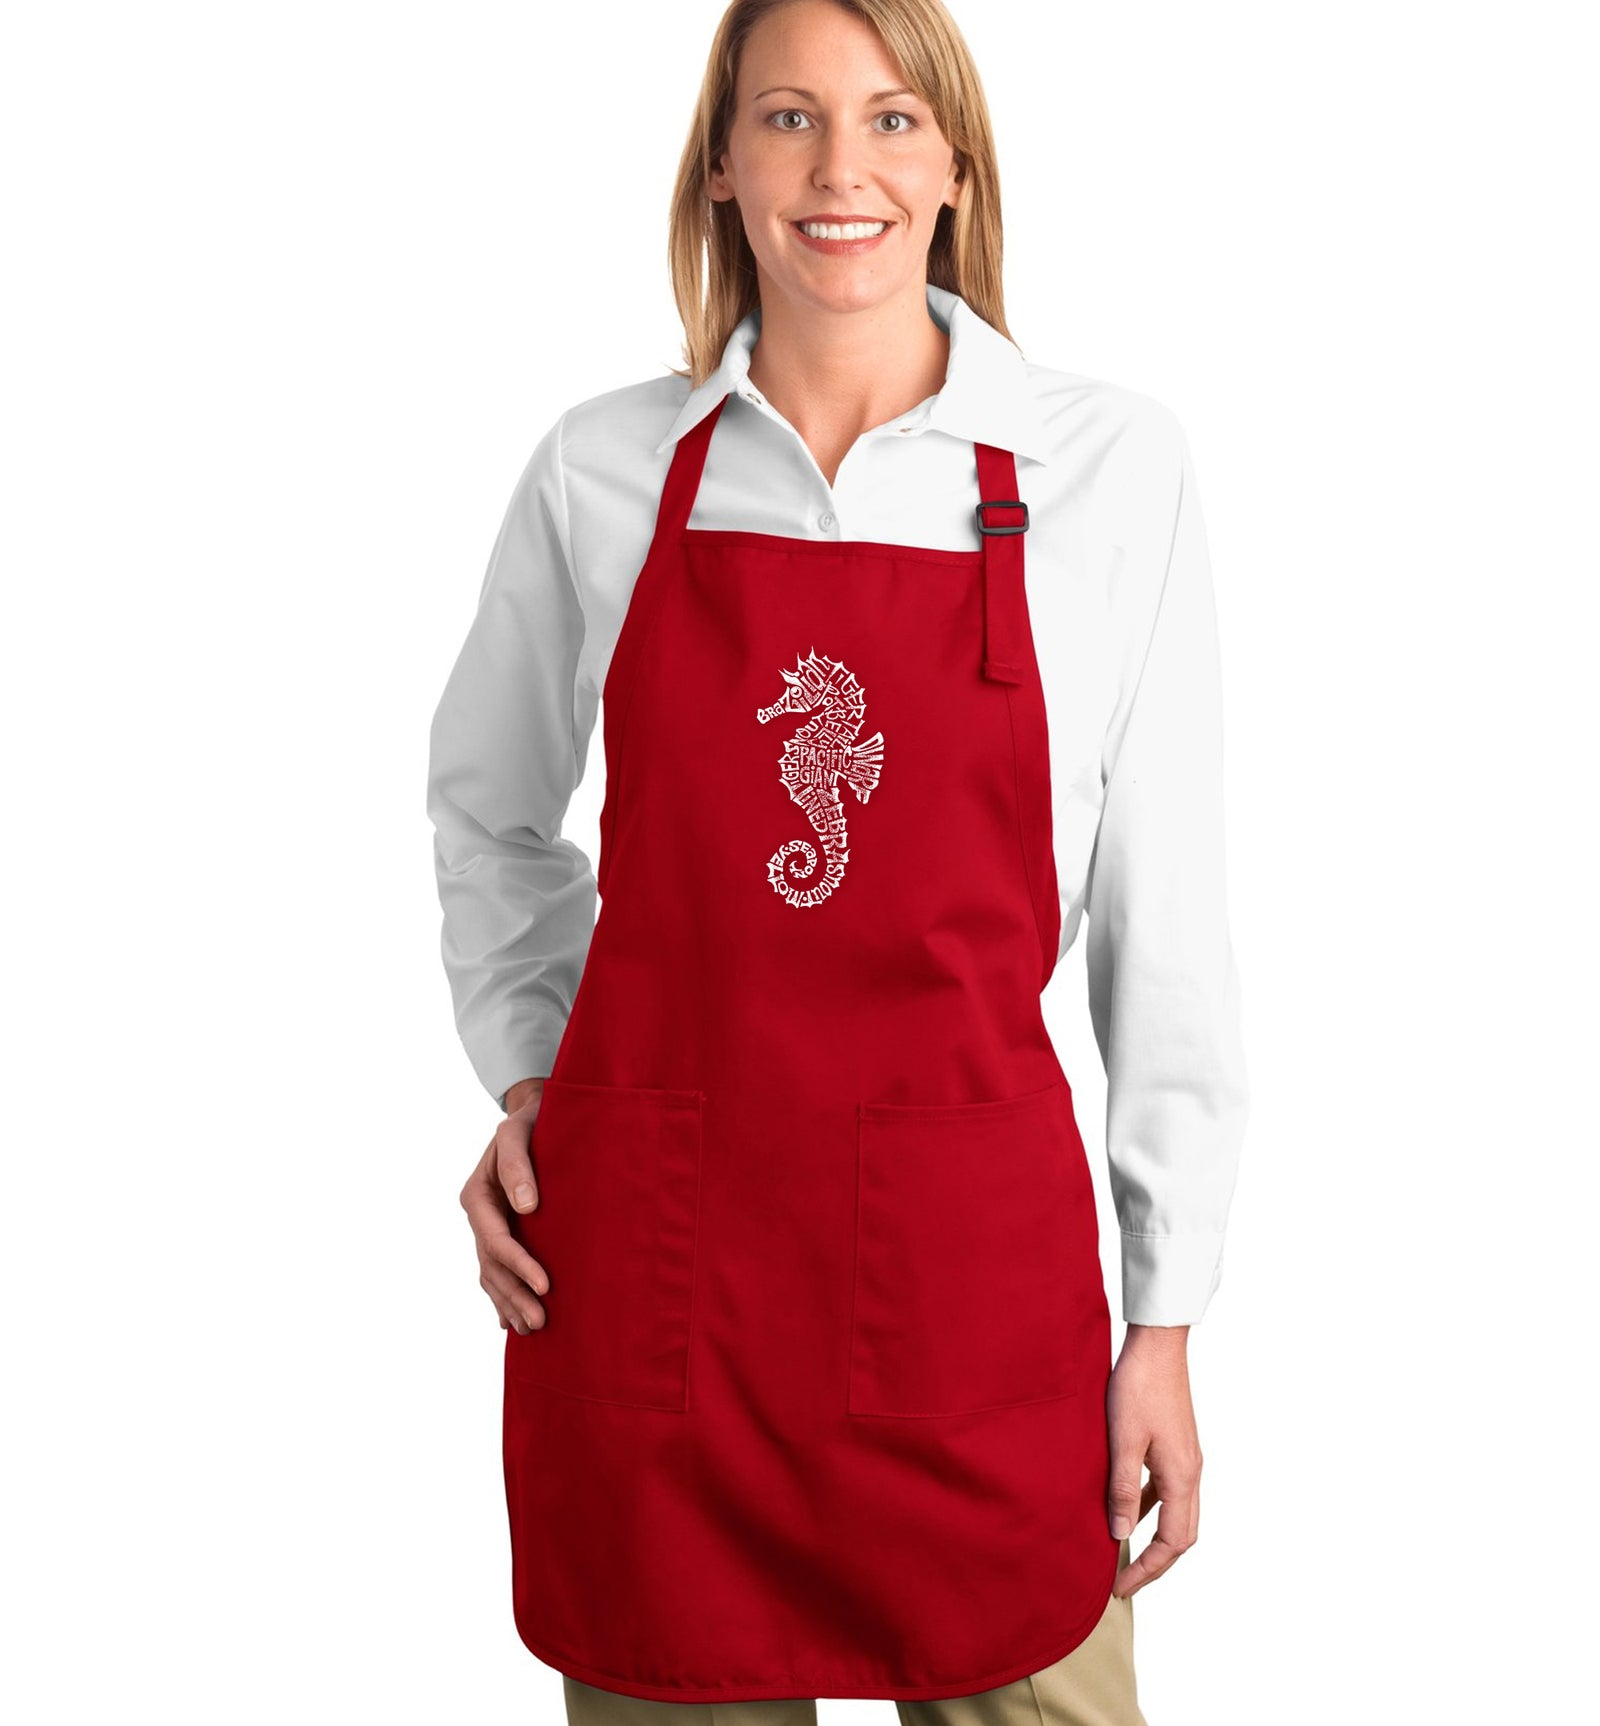 Full Length Word Art Apron - Types of Seahorse